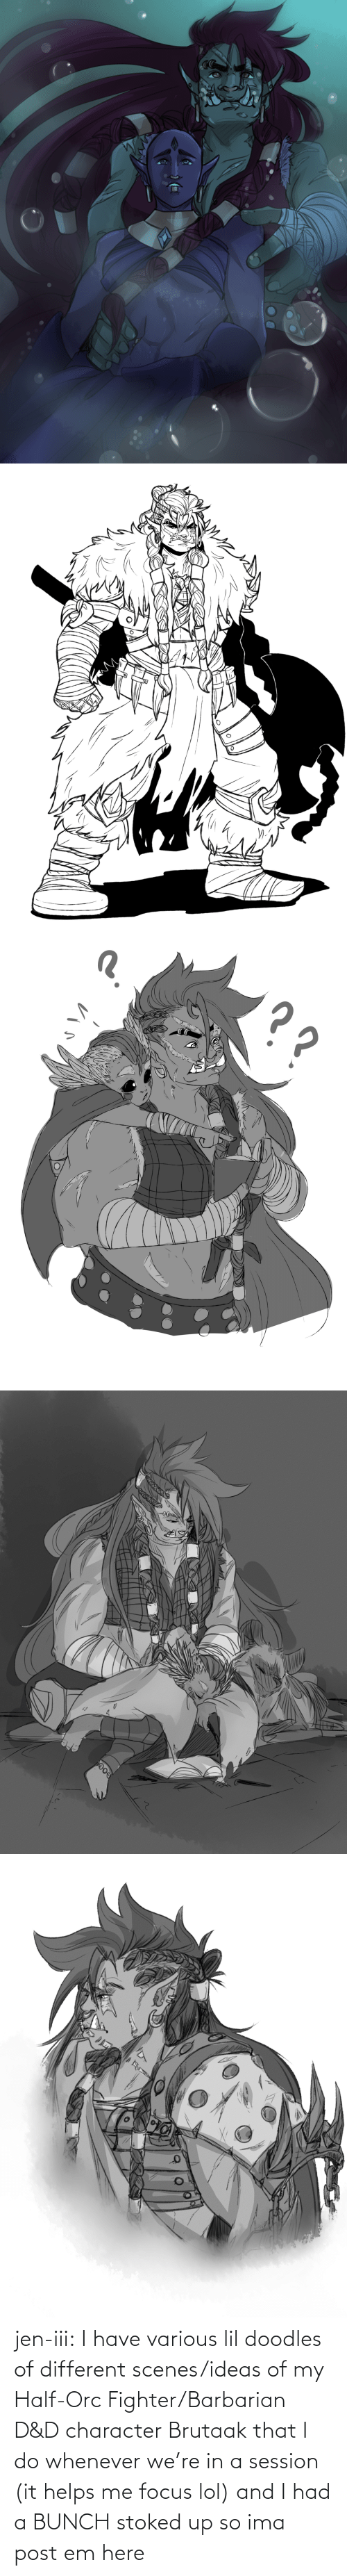 In A: jen-iii:  I have various lil doodles of different scenes/ideas of my Half-Orc Fighter/Barbarian D&D character Brutaak that I do whenever we're in a session (it helps me focus lol) and I had a BUNCH stoked up so ima post em here